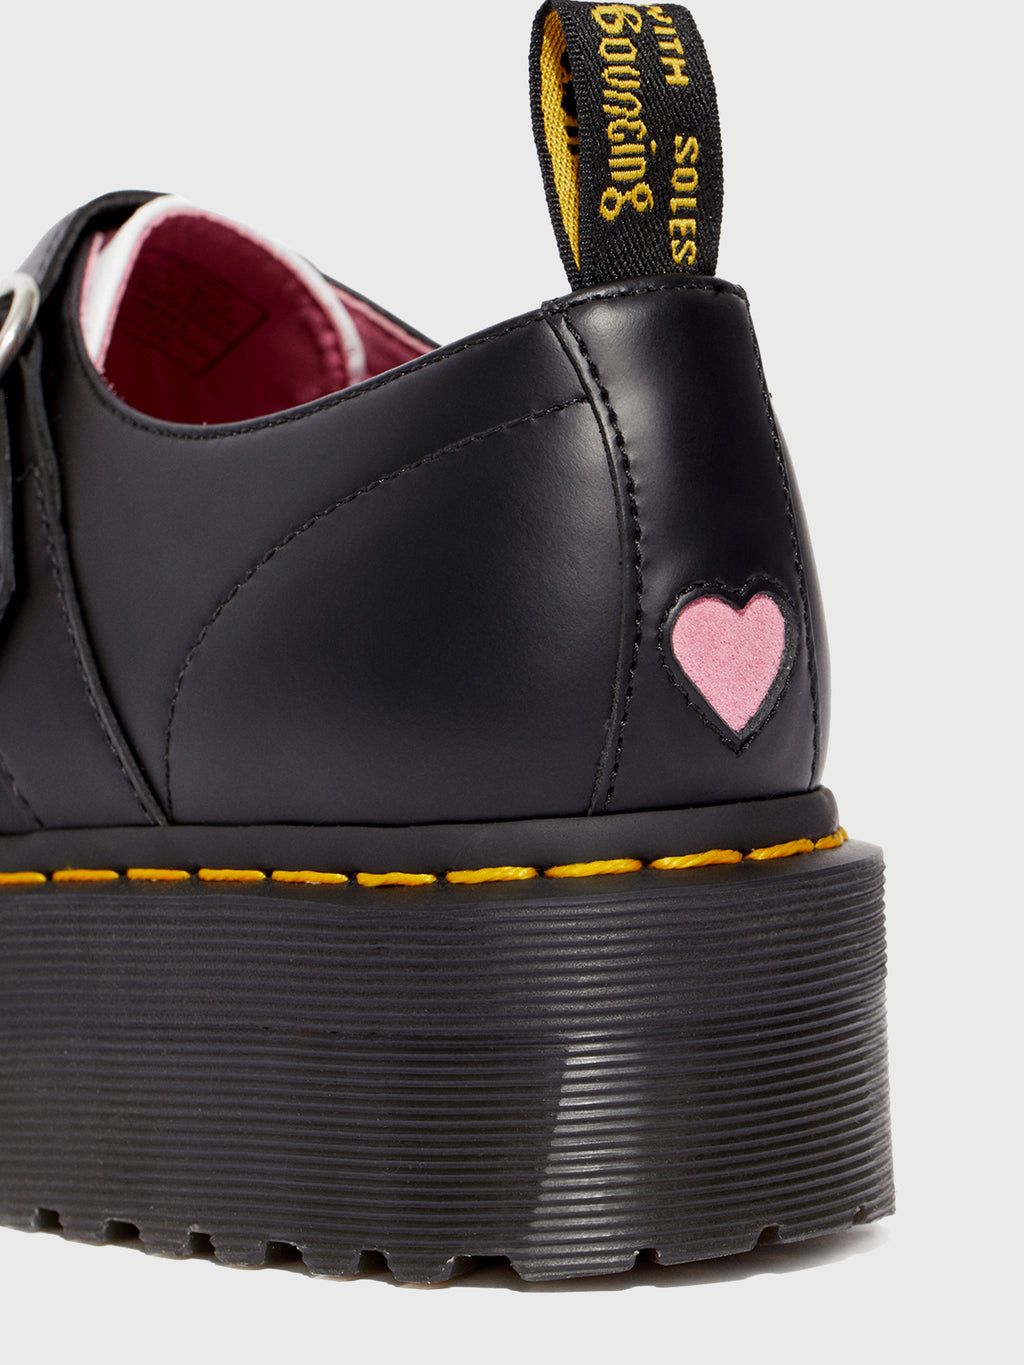 Dr. Martens x Lazy Oaf Buckle Creeper